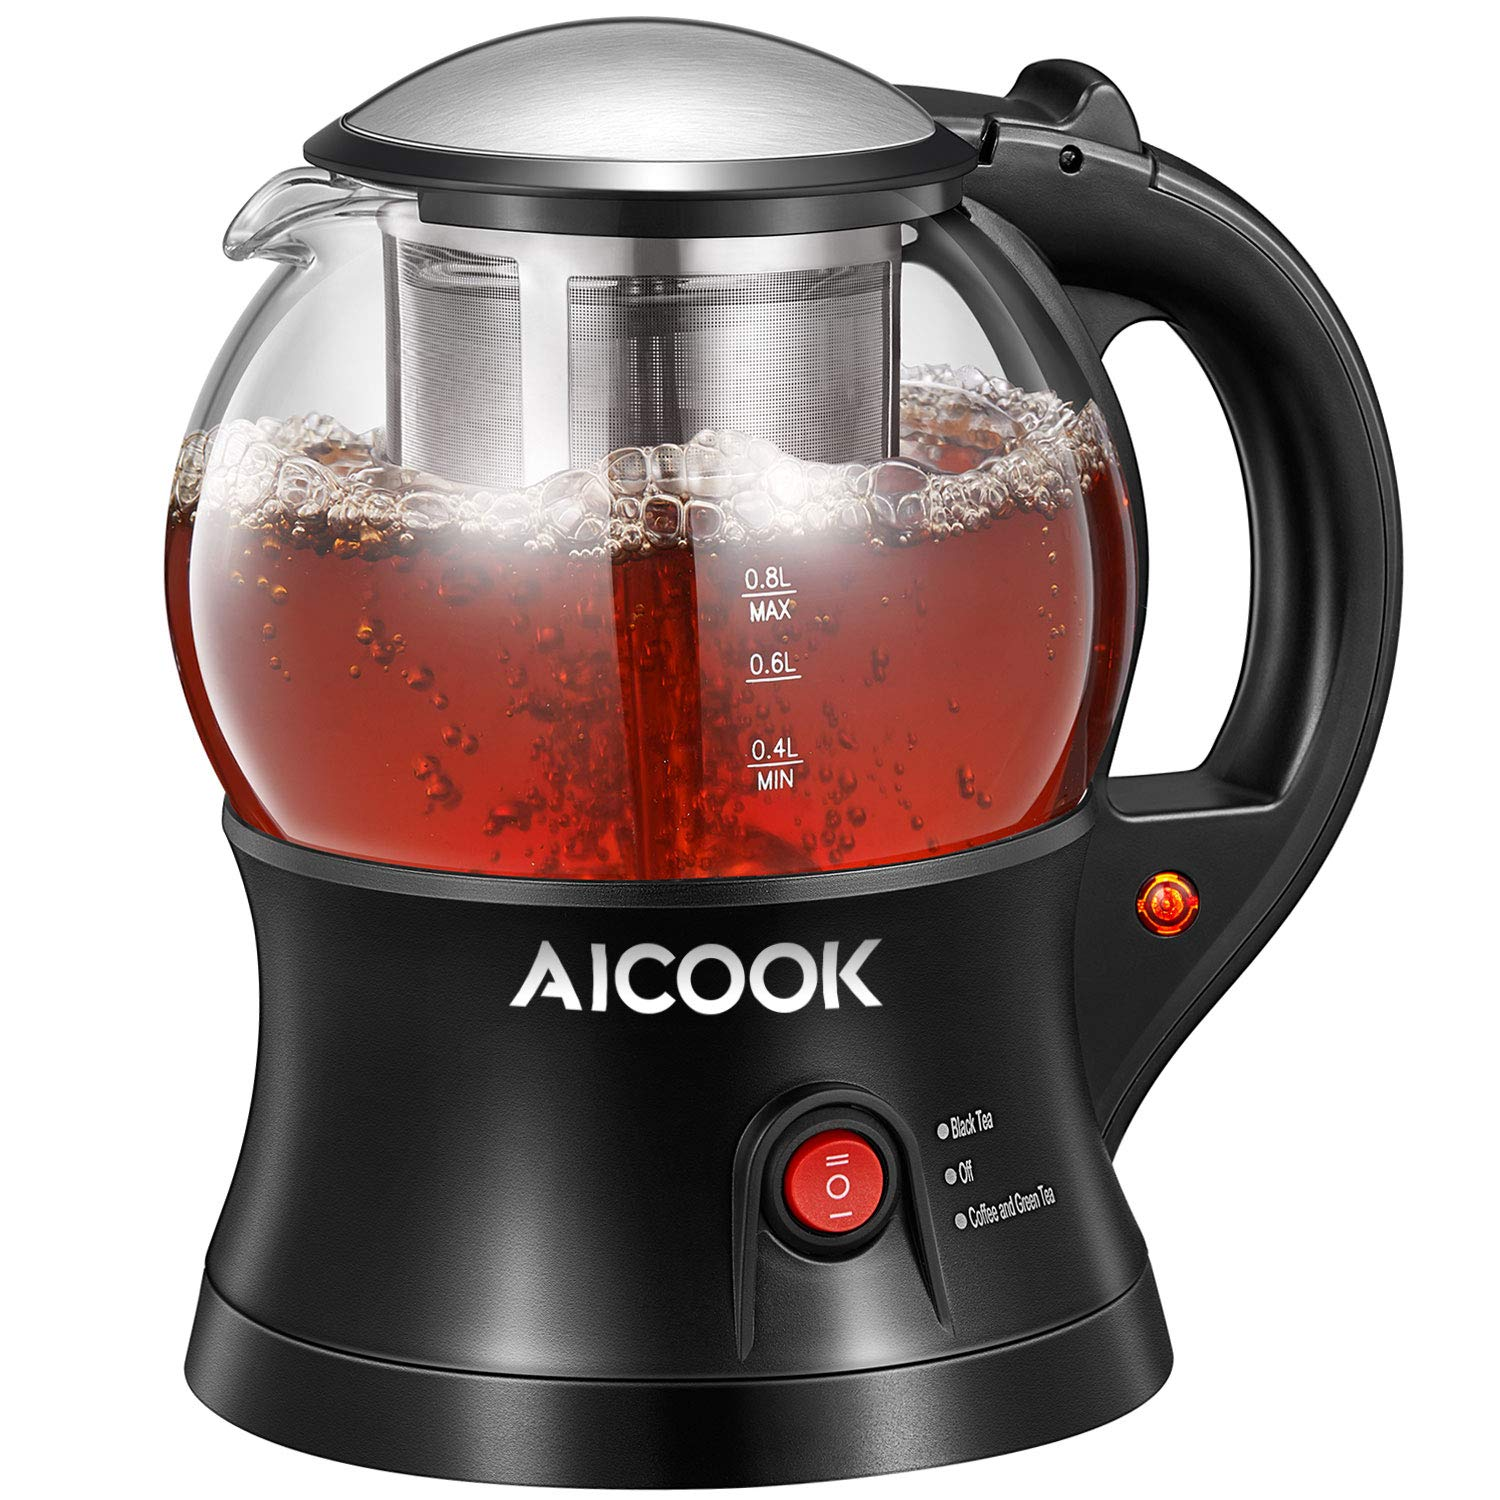 Electric Teapot, AICOOK Cordless Tea Pot Kettle with Removable Tea Infuser Set, Tea Maker For Blooming, Loose Leaf & Tea Bag and Flowering Tea, Keep Warm, Auto Shut-Off and Boil-Dry Protection, BPA Free by AICOOK